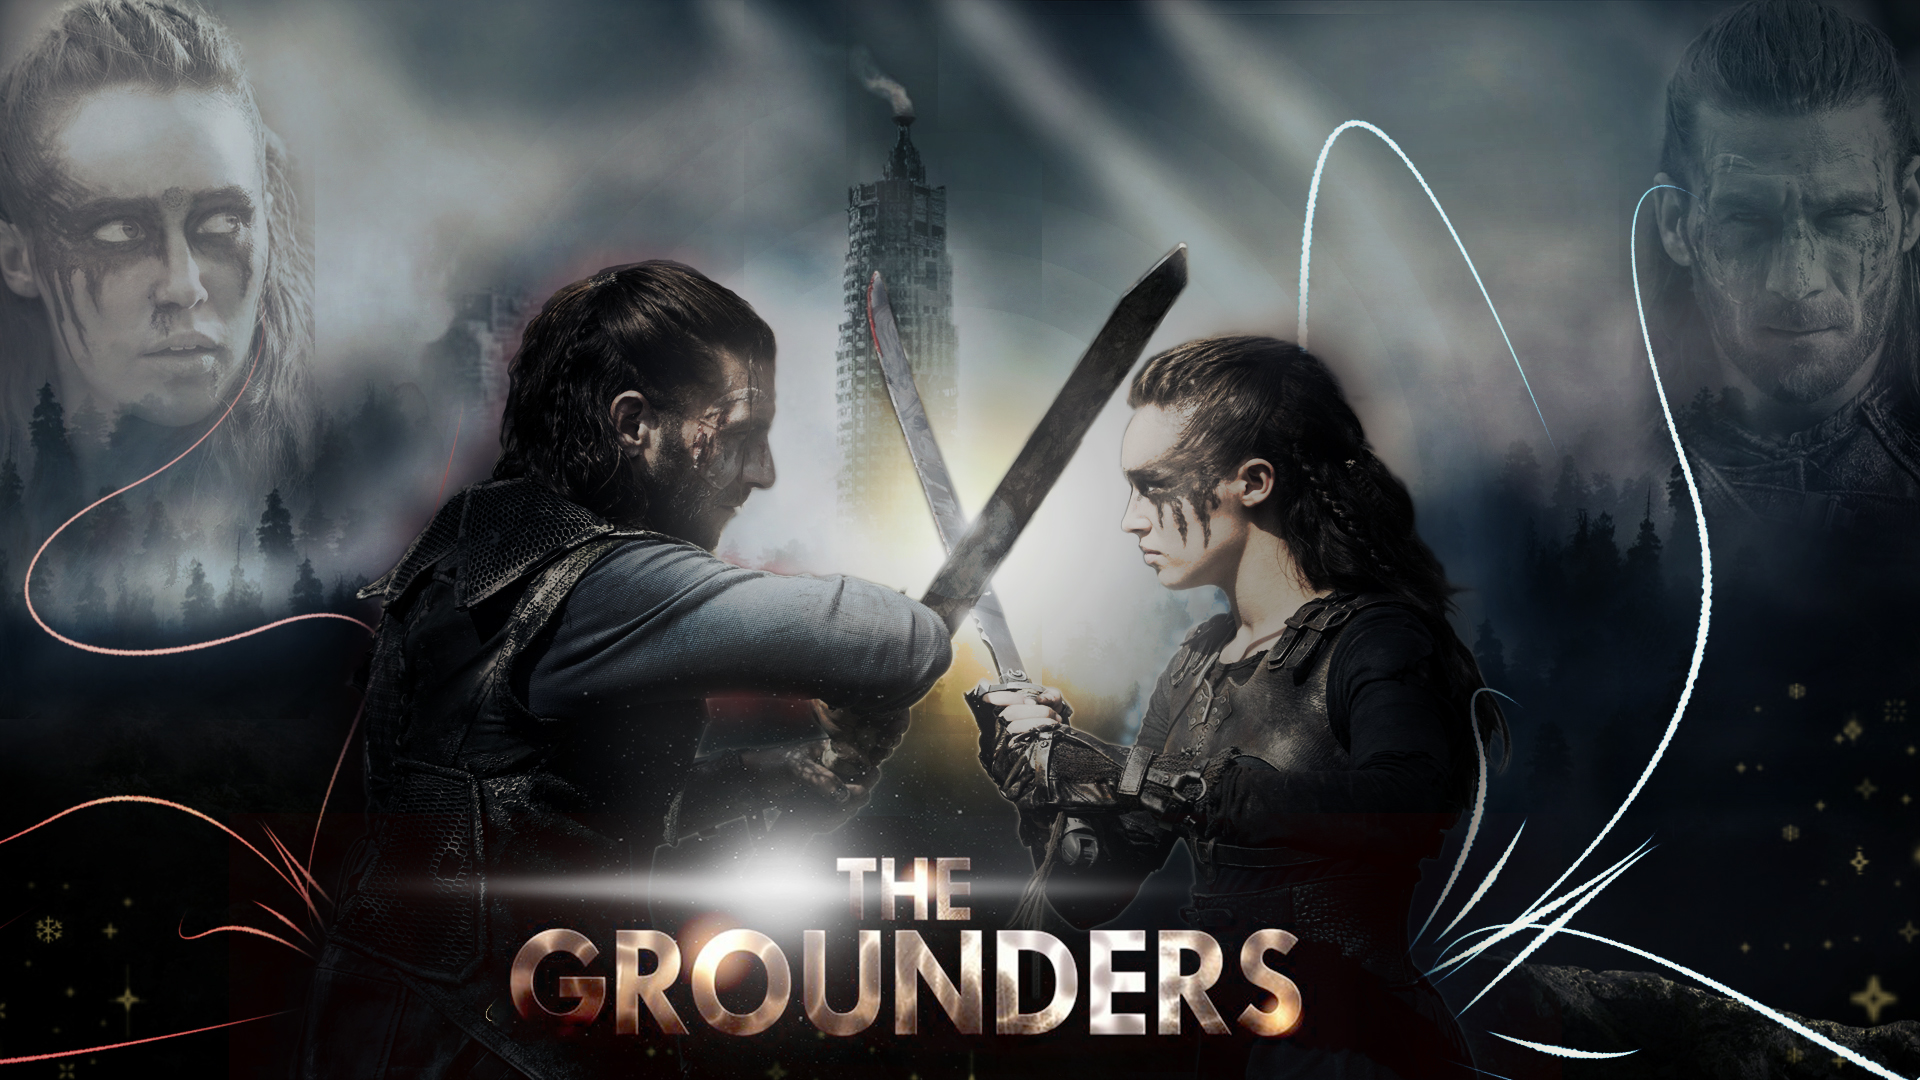 The Grounders